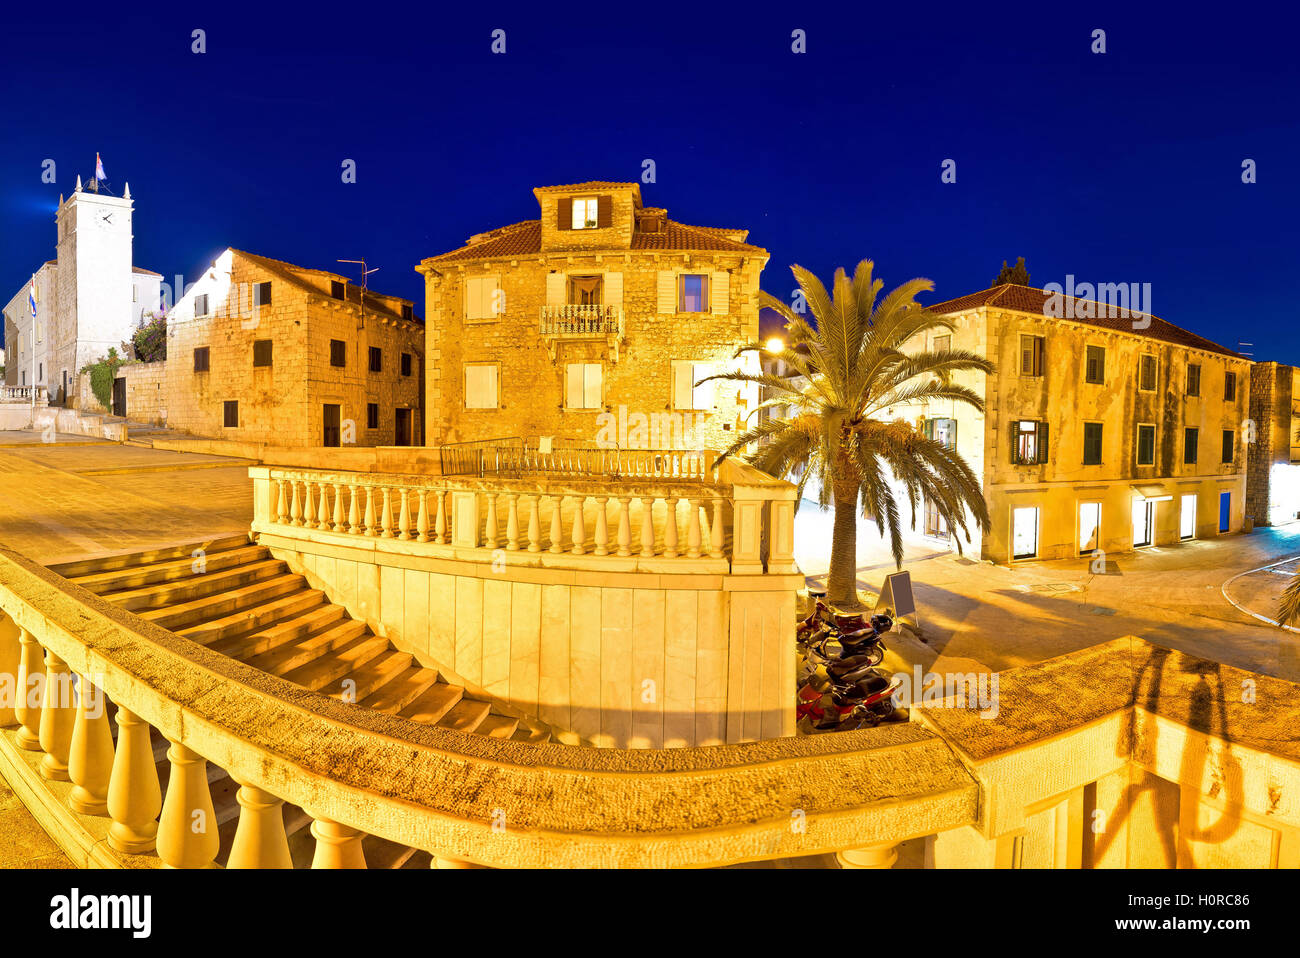 Supetar old stone square evening view, island of Brac, Dalmatia, Croatia Stock Photo